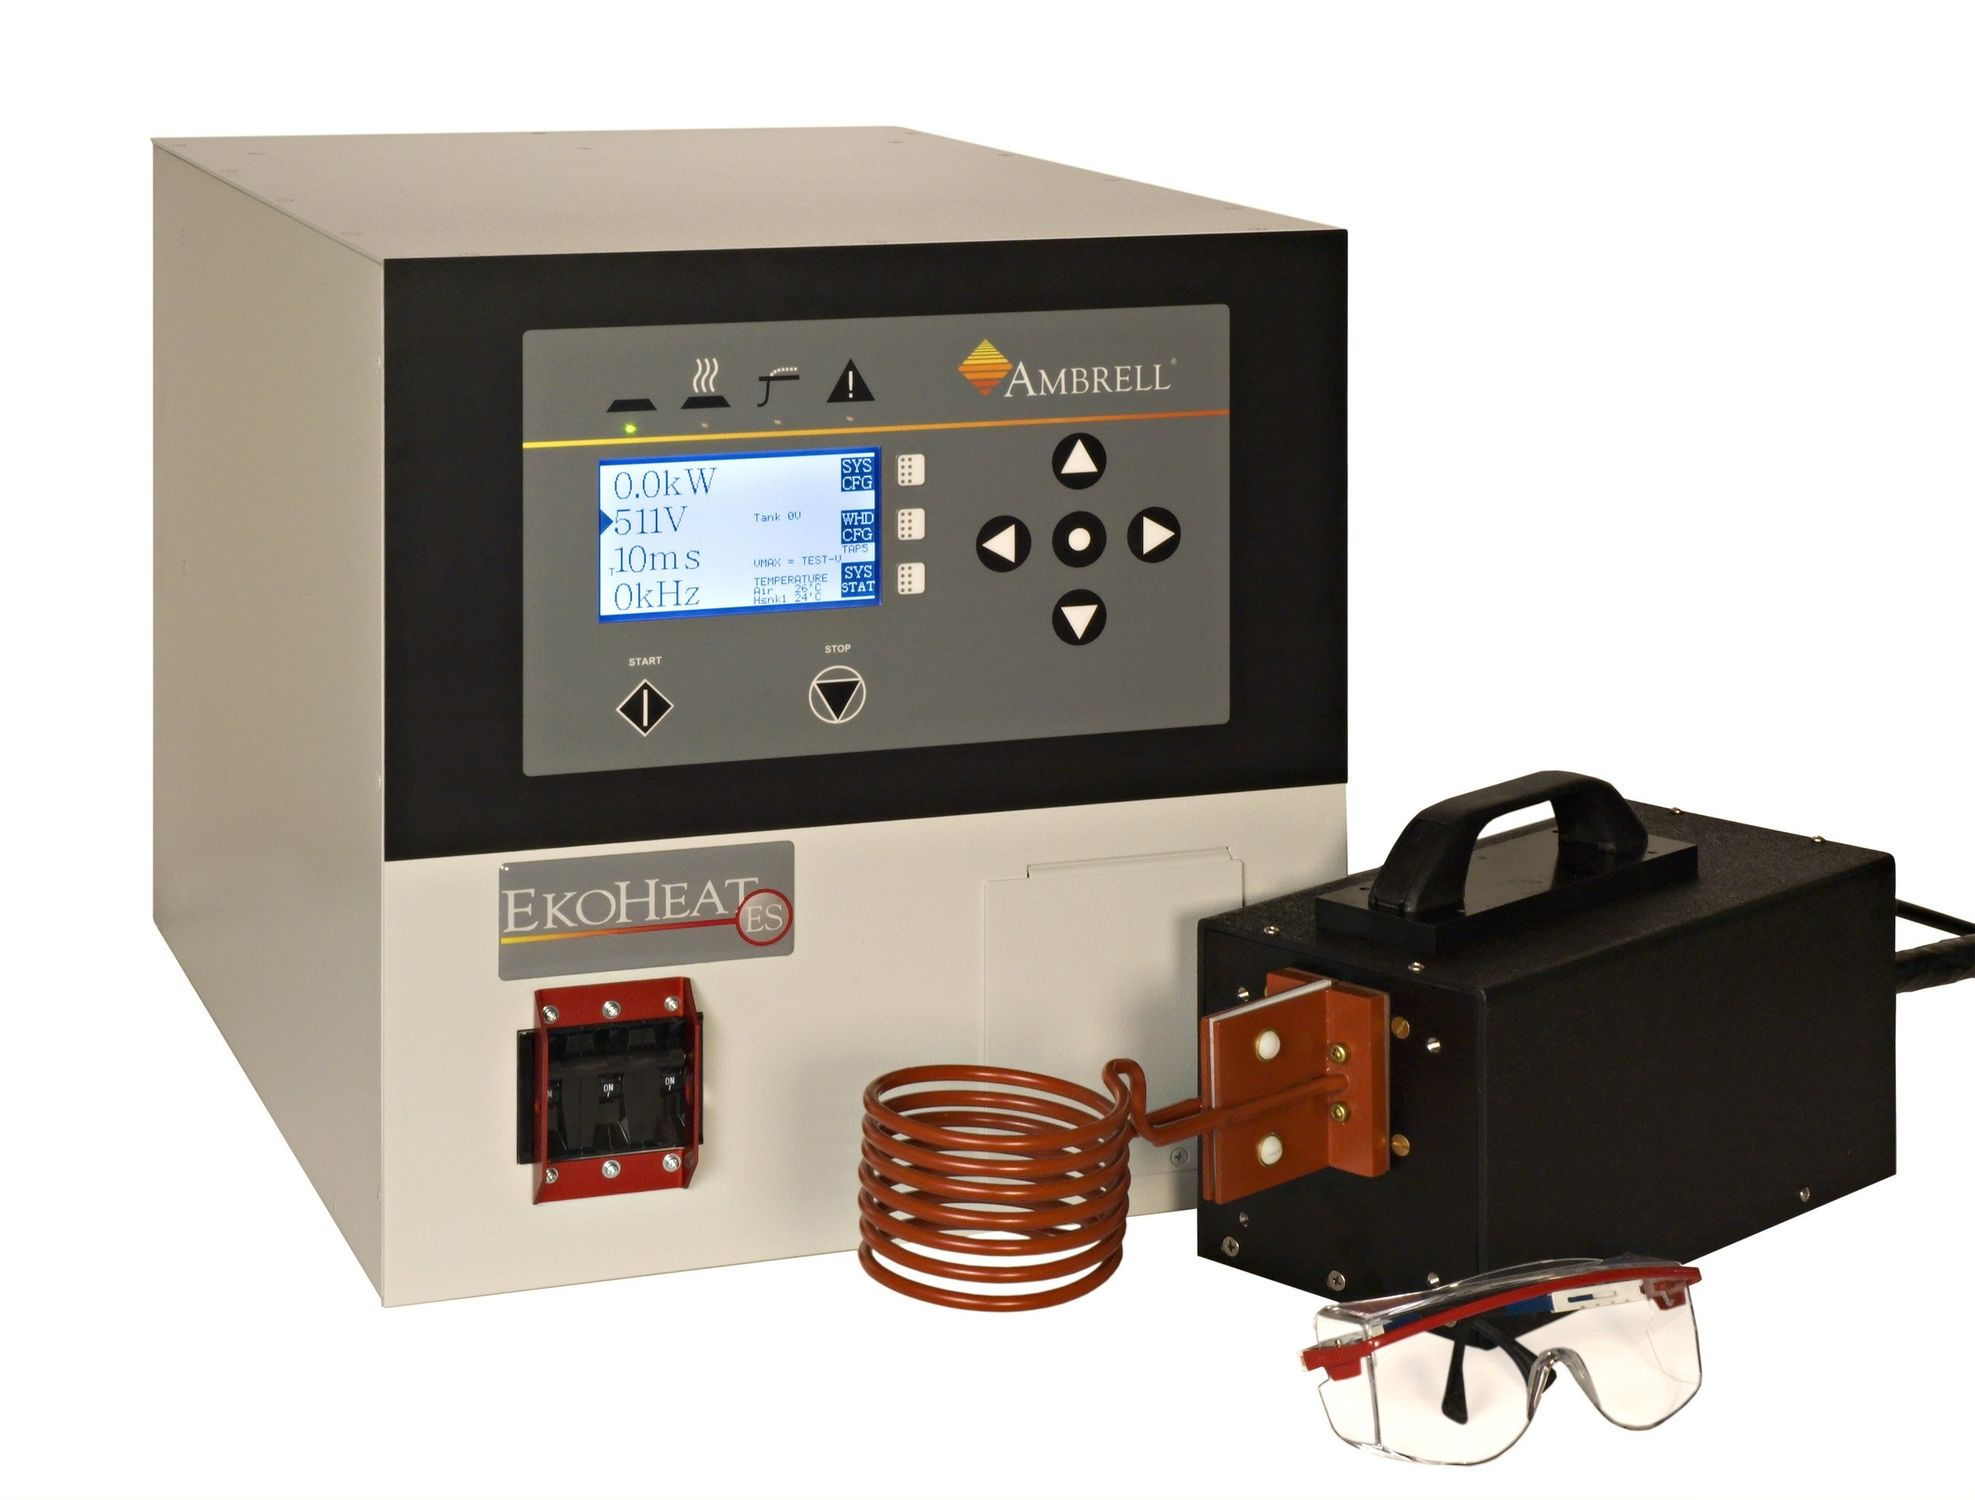 EKOHEAT 10/100 Quenching induction heater 10 kW, 50 – 150 kHz